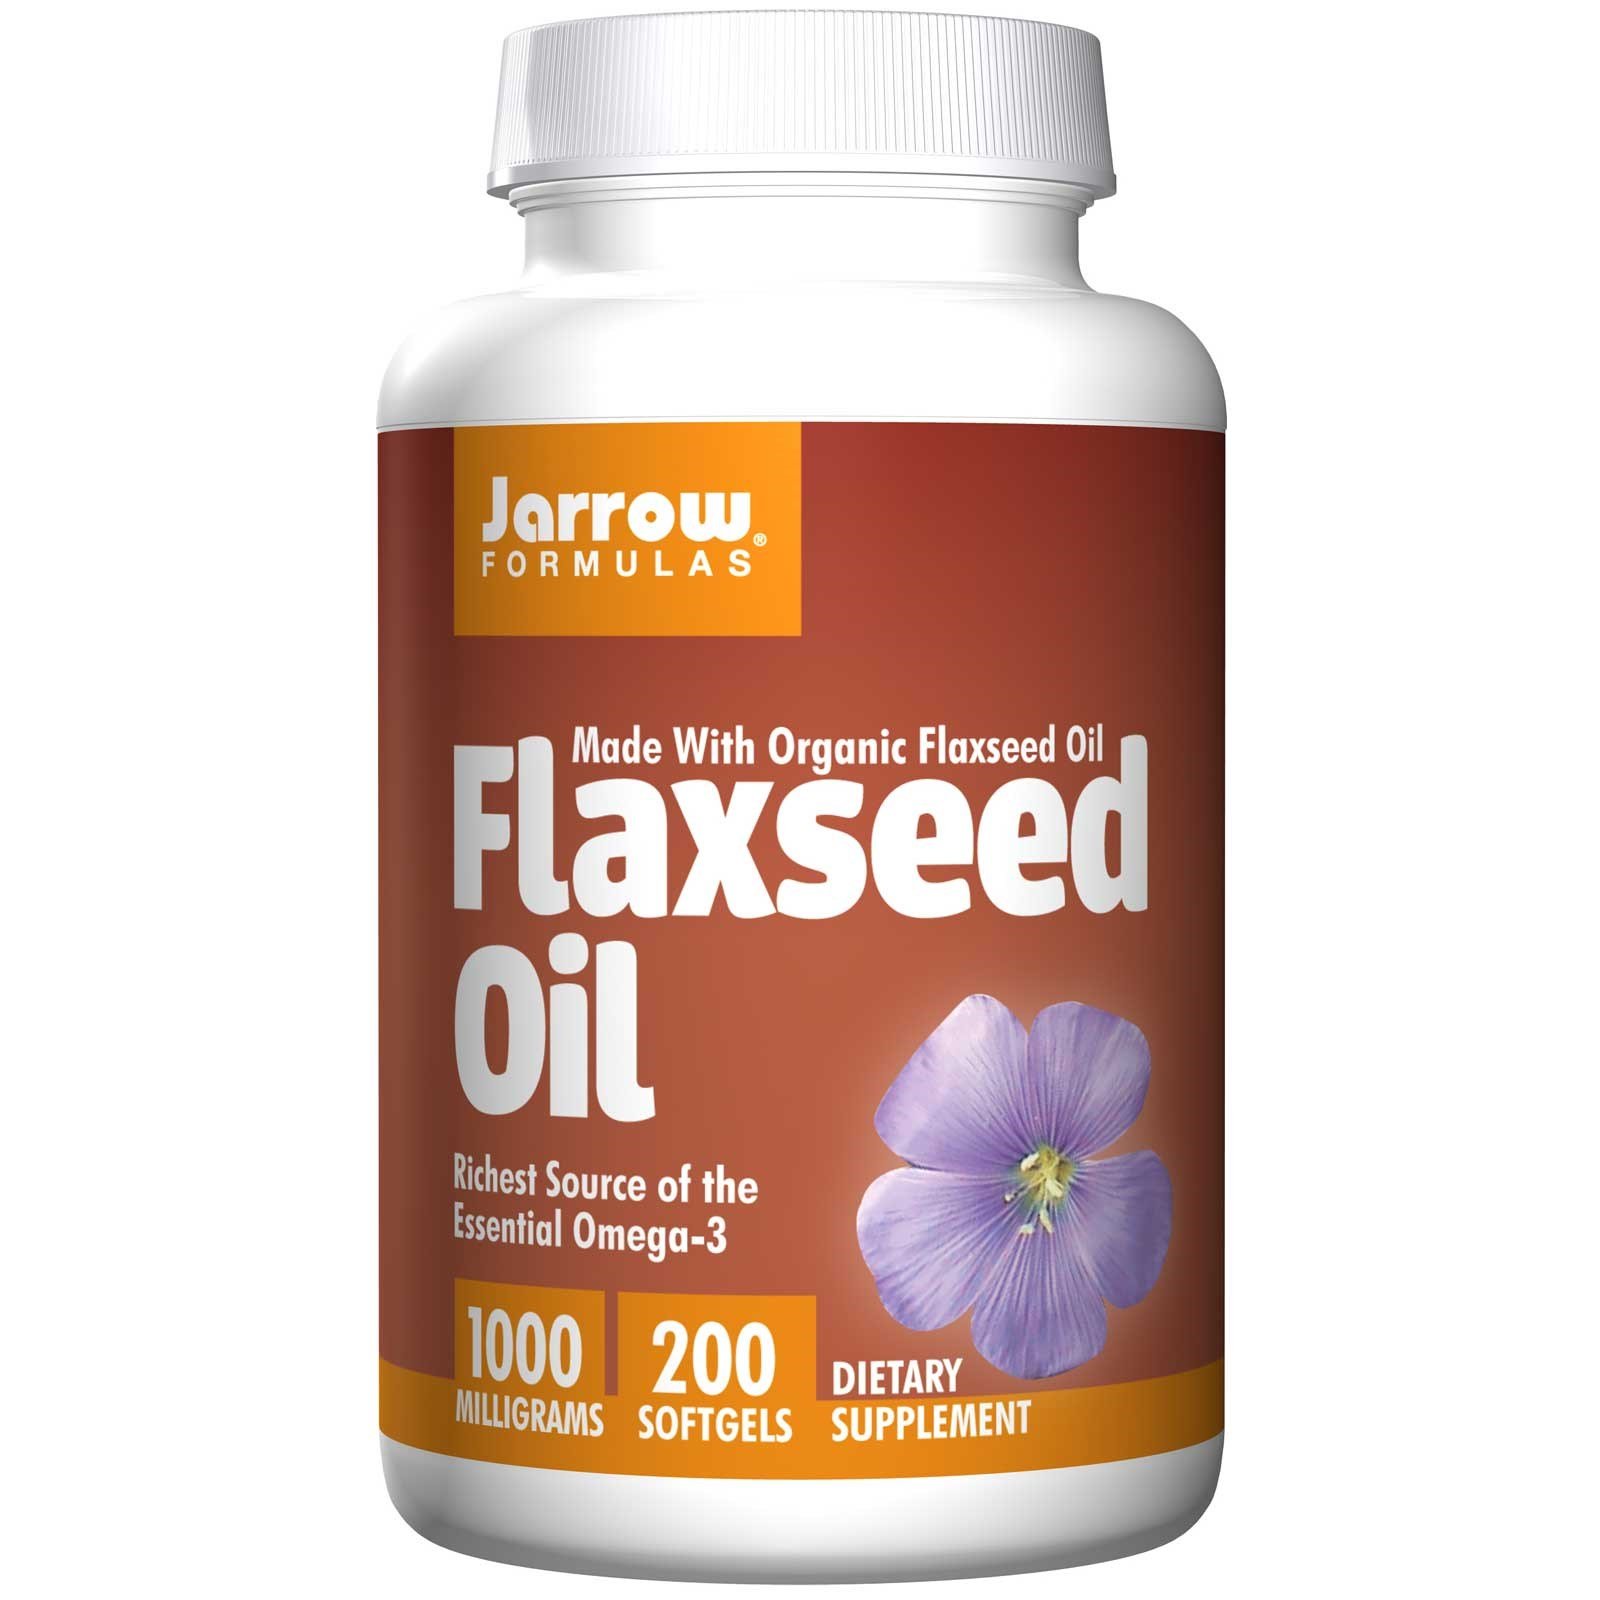 Flaxseed Oil 1000 mg (200 Softgels) Jarrow Formulas